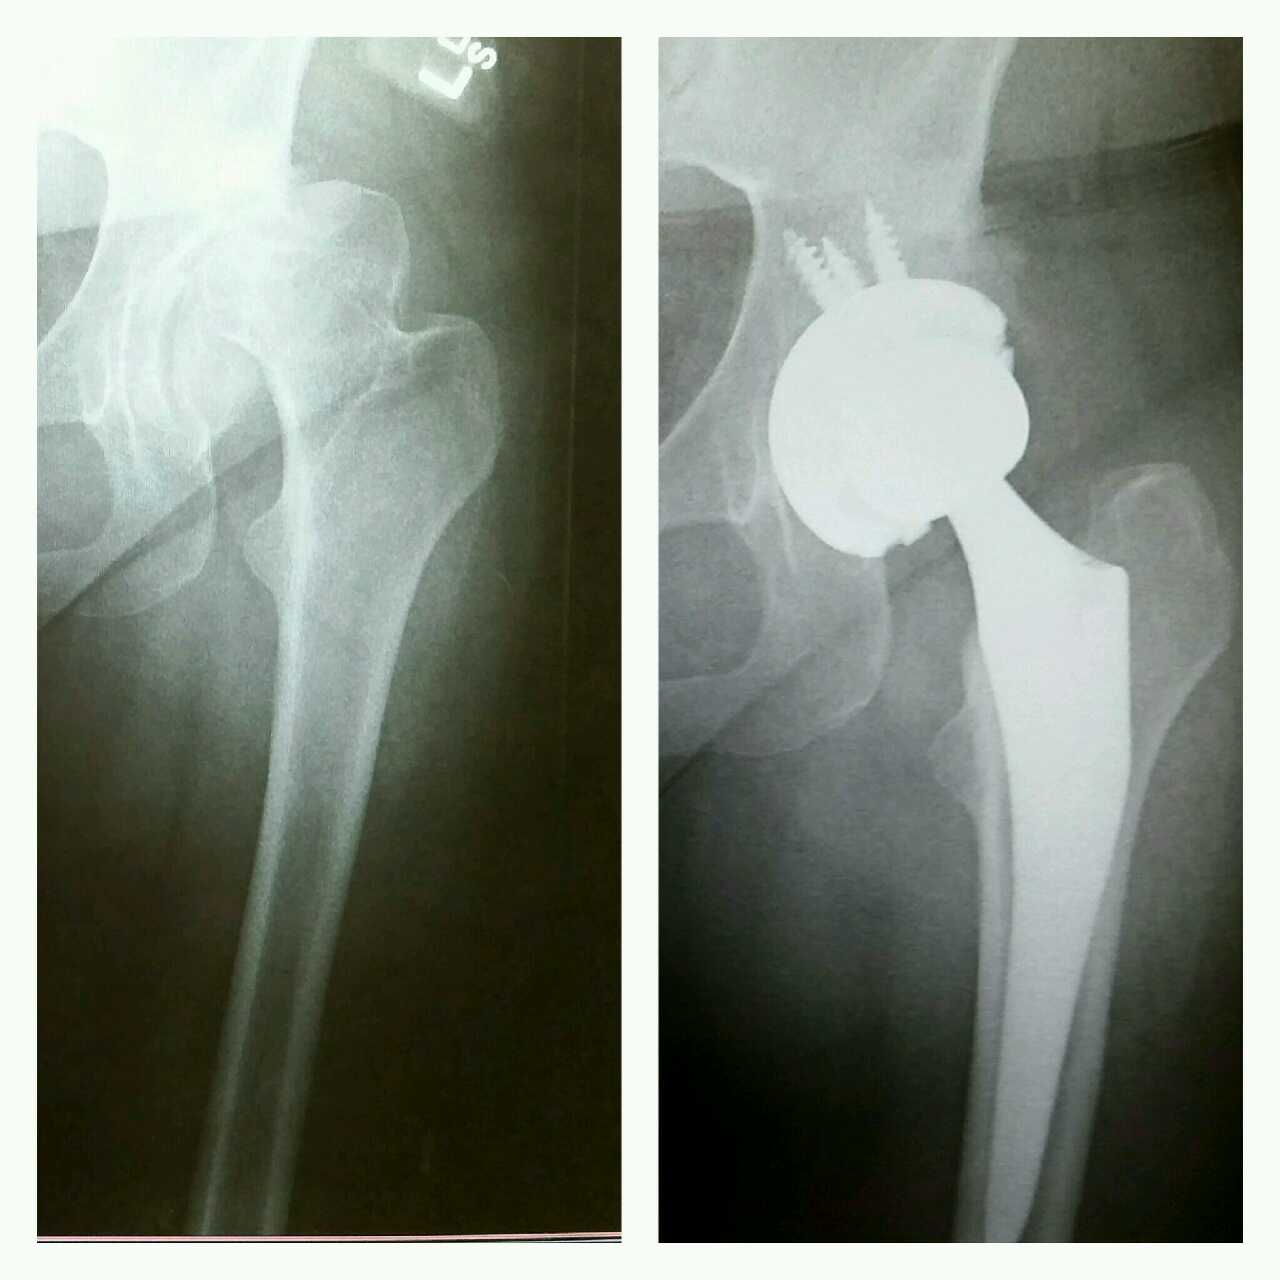 Total Hip Arthroplasty Before And After On X-ray